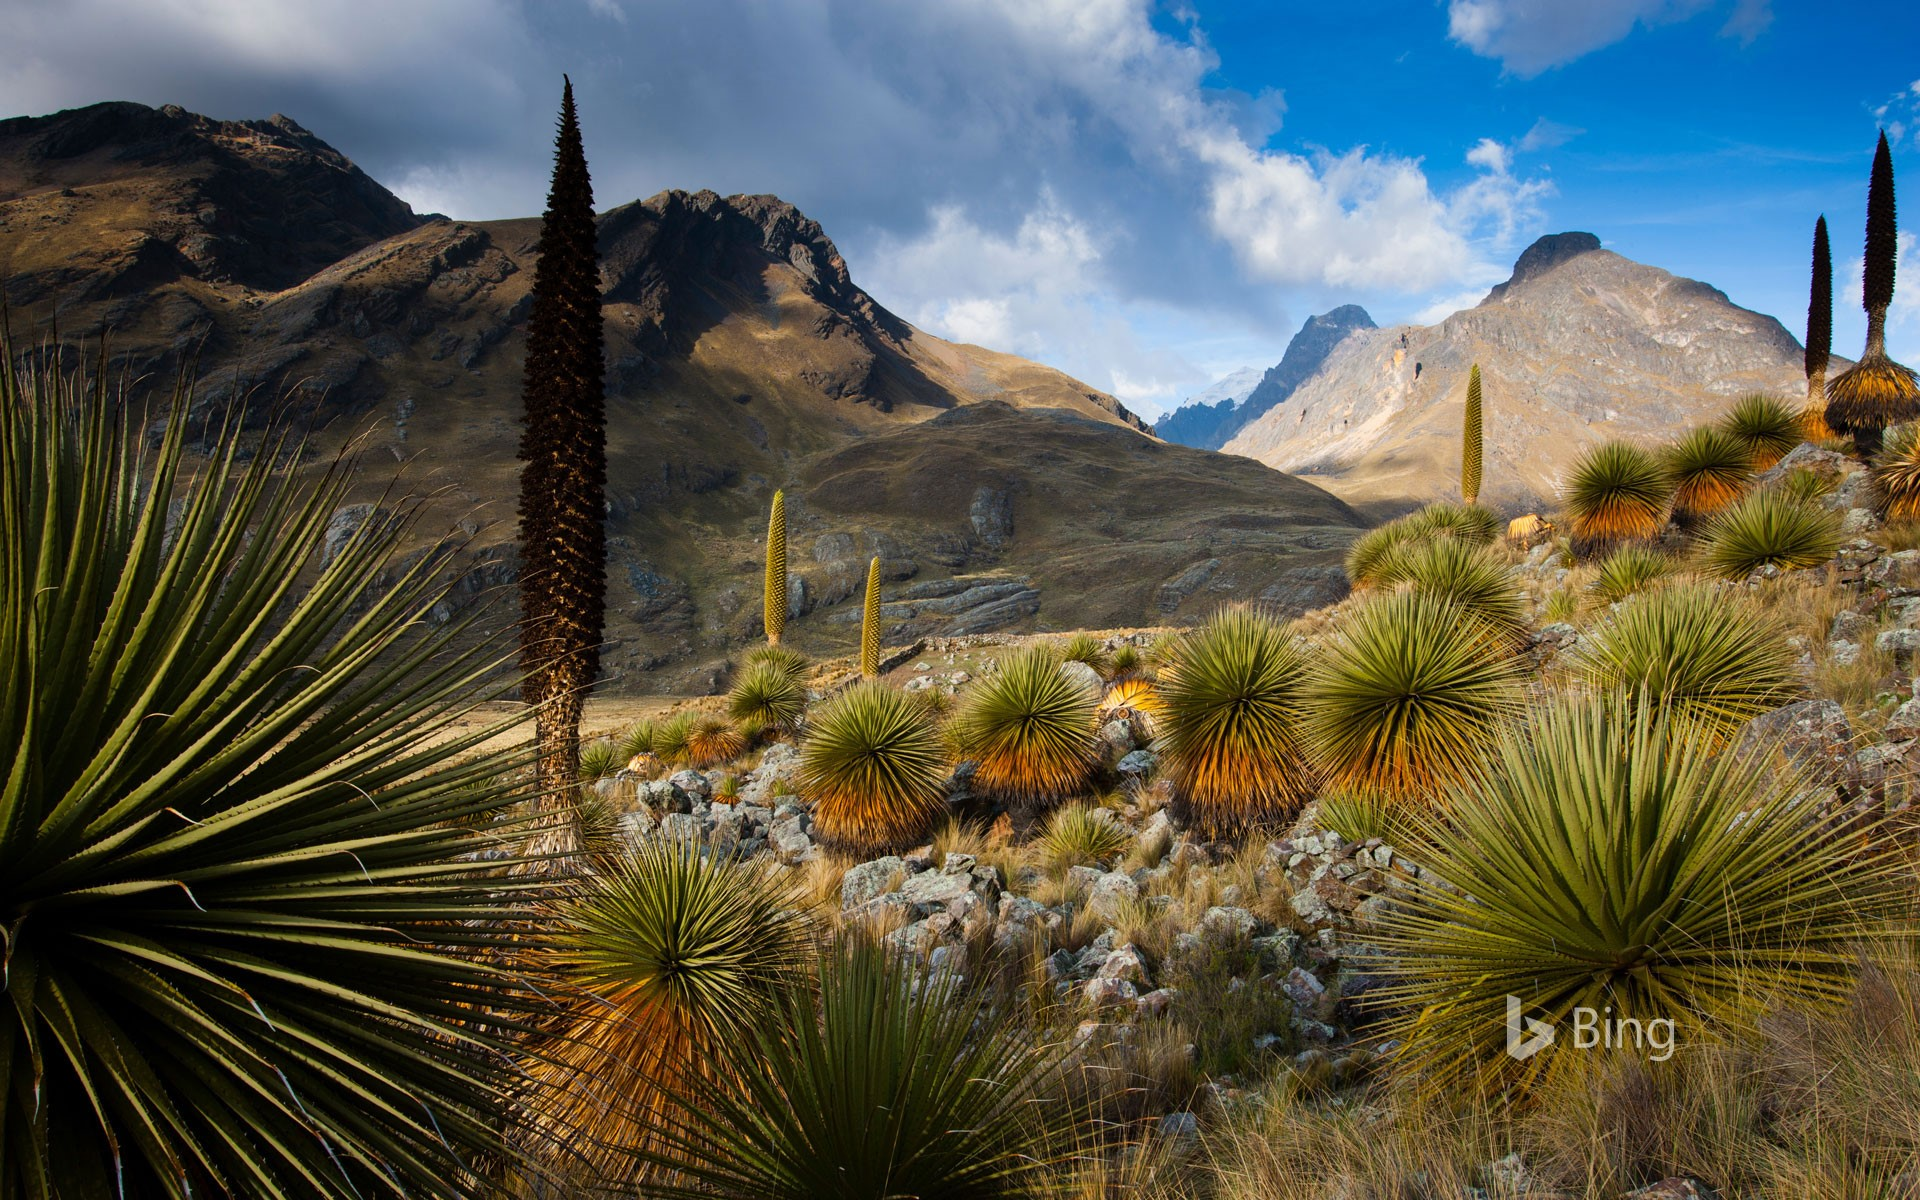 Queen of the Andes plants with the Cordillera Blanca massif in the background, Peru